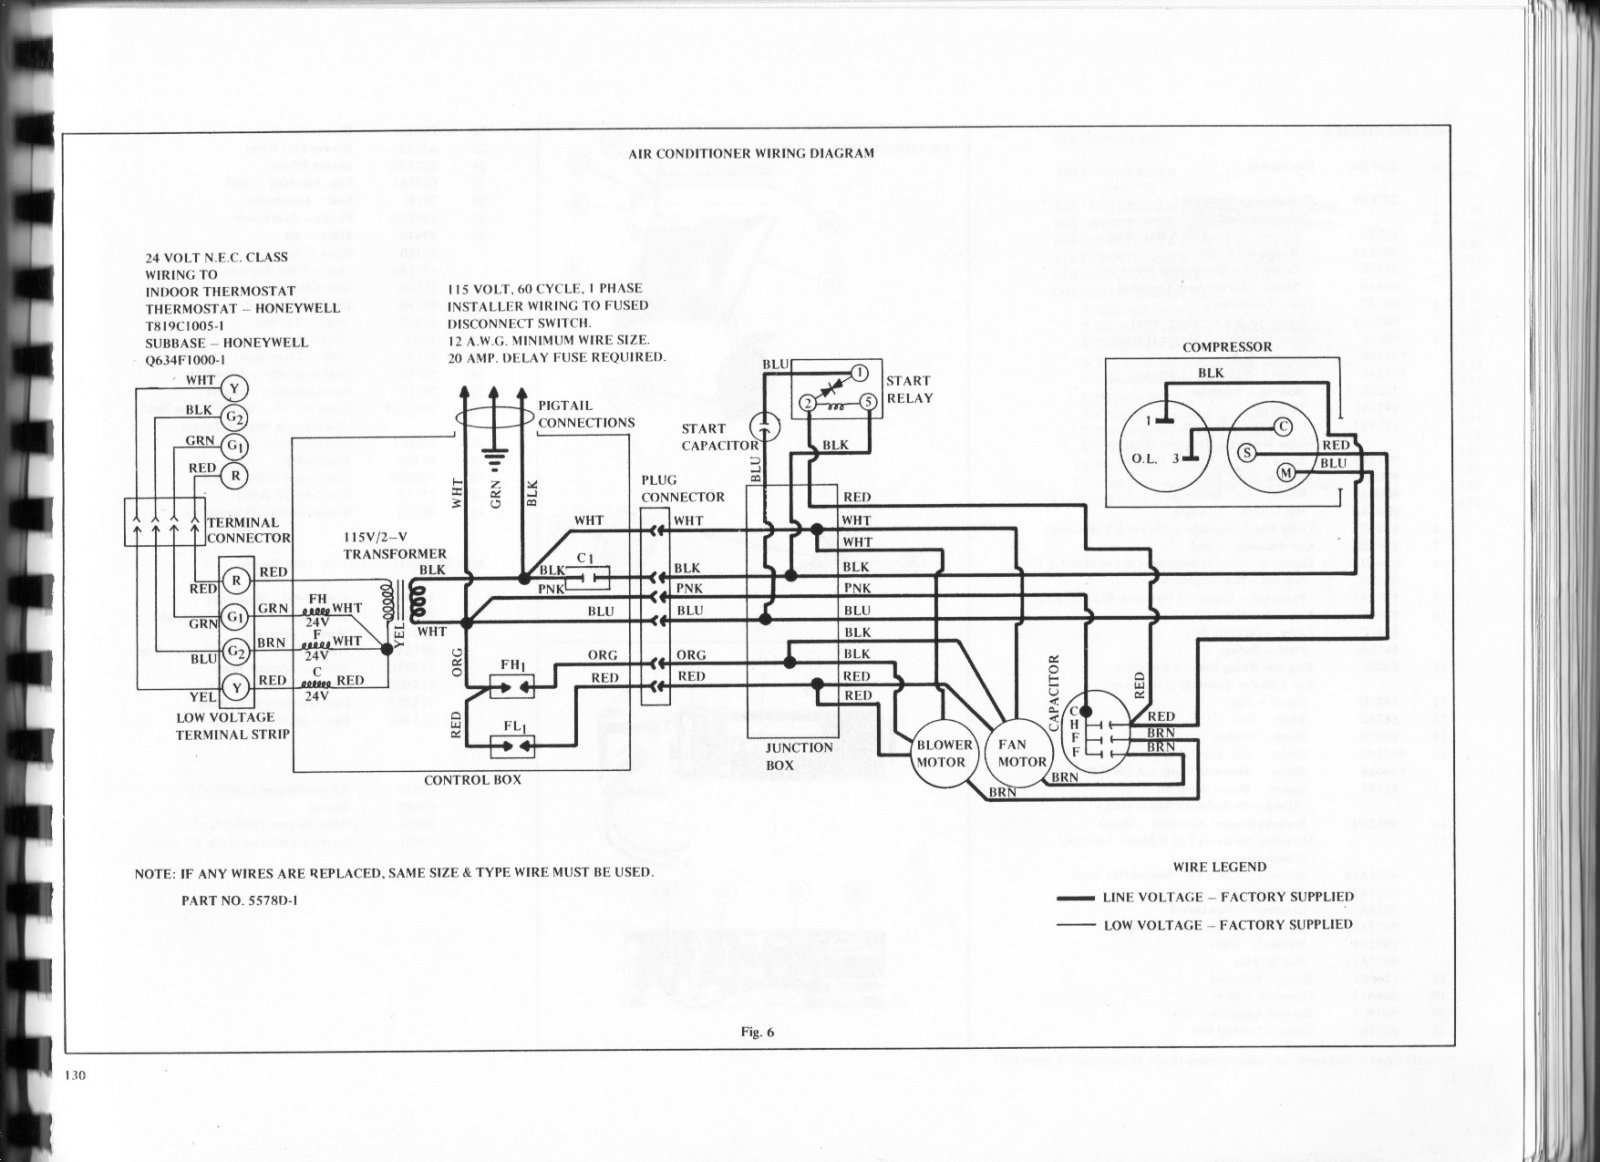 Click image for larger version  Name:Air Conditioning Wiring Diagram.jpg Views:1278 Size:222.8 KB ID:109365